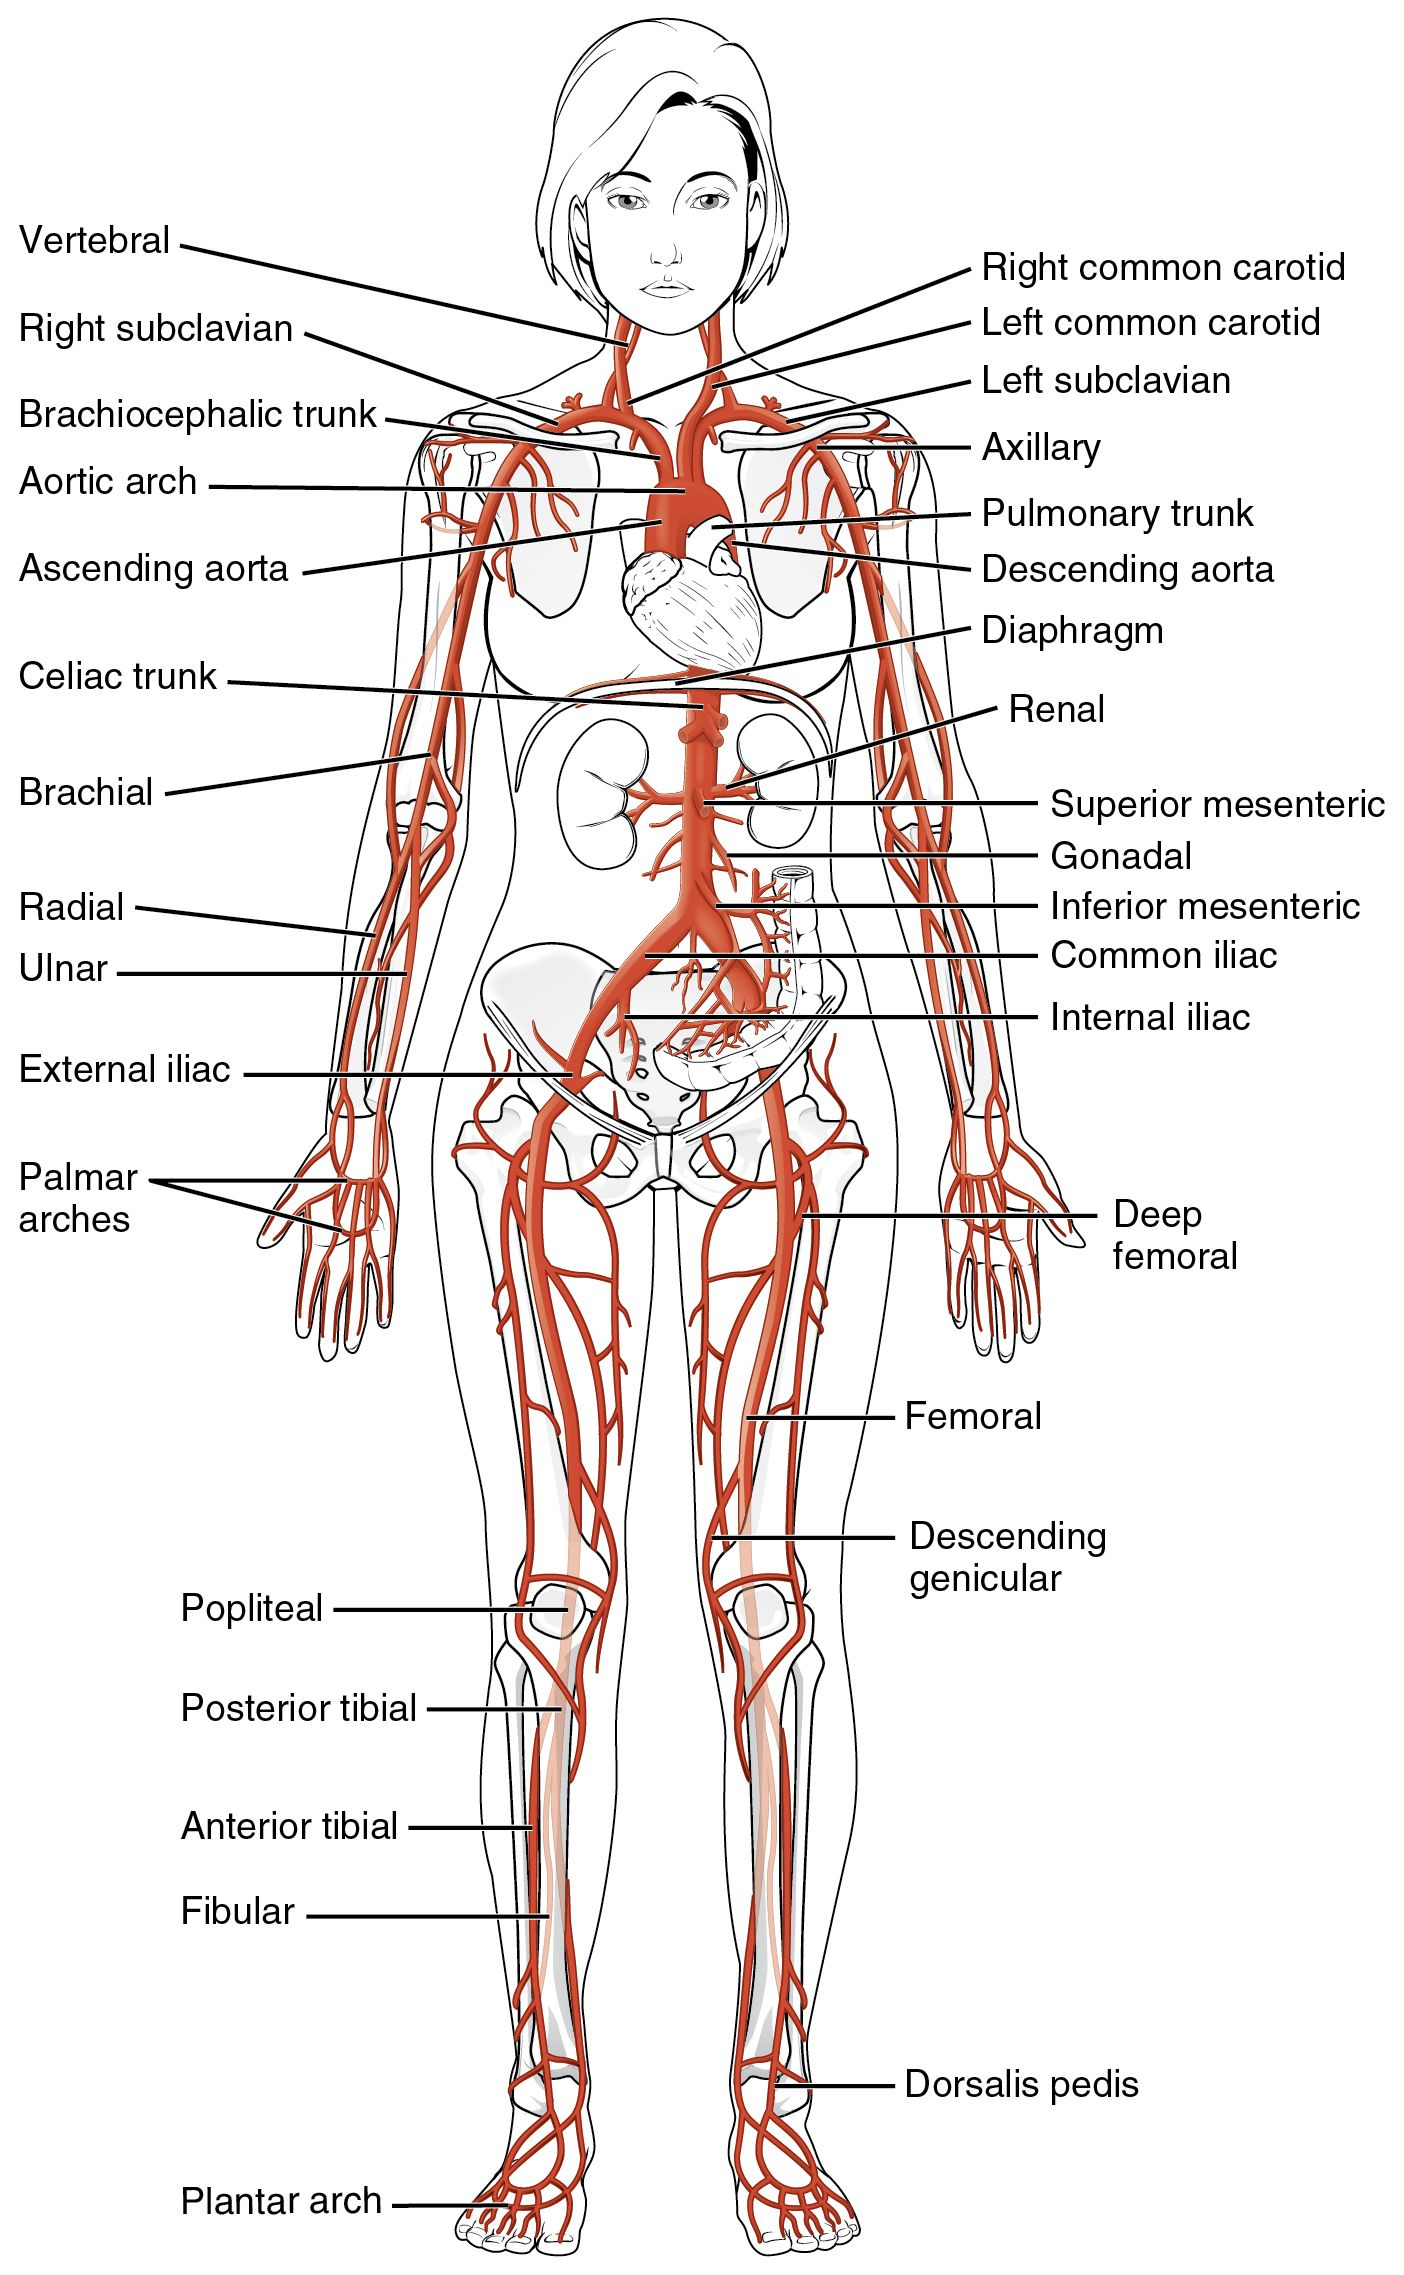 Major Systemic Arteries of the body SimpleMed